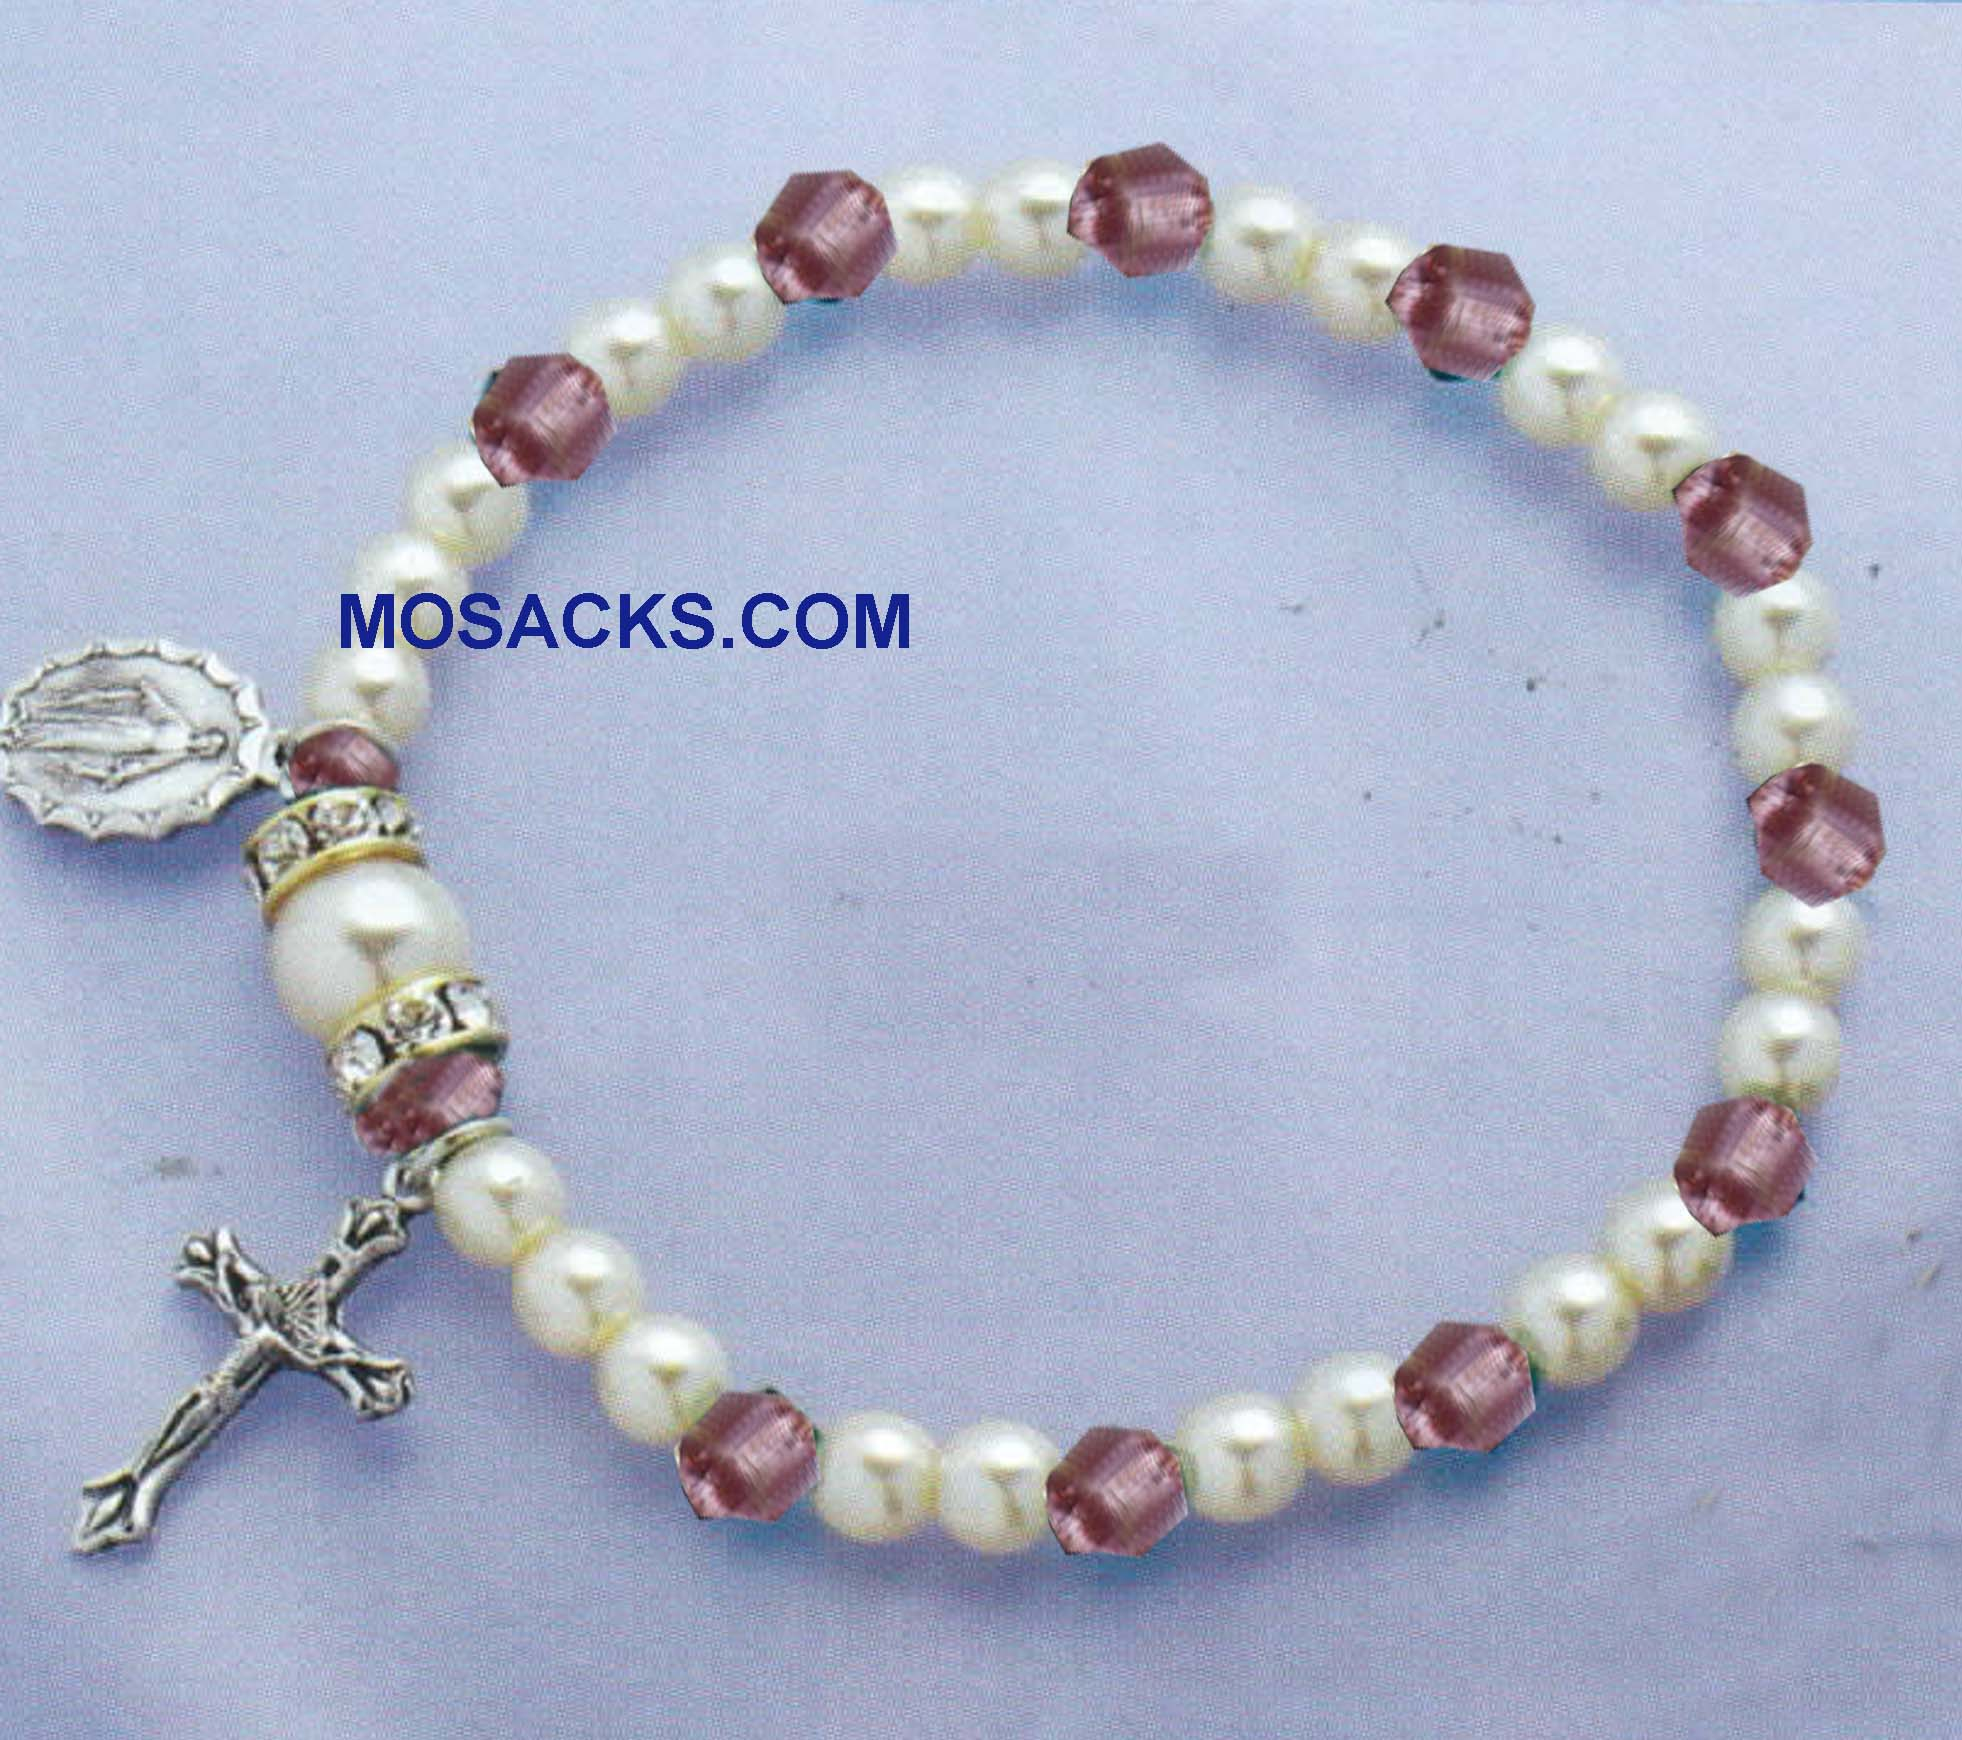 Birthstone Rosary Stretch Bracelet Light Amethyst -45280LA